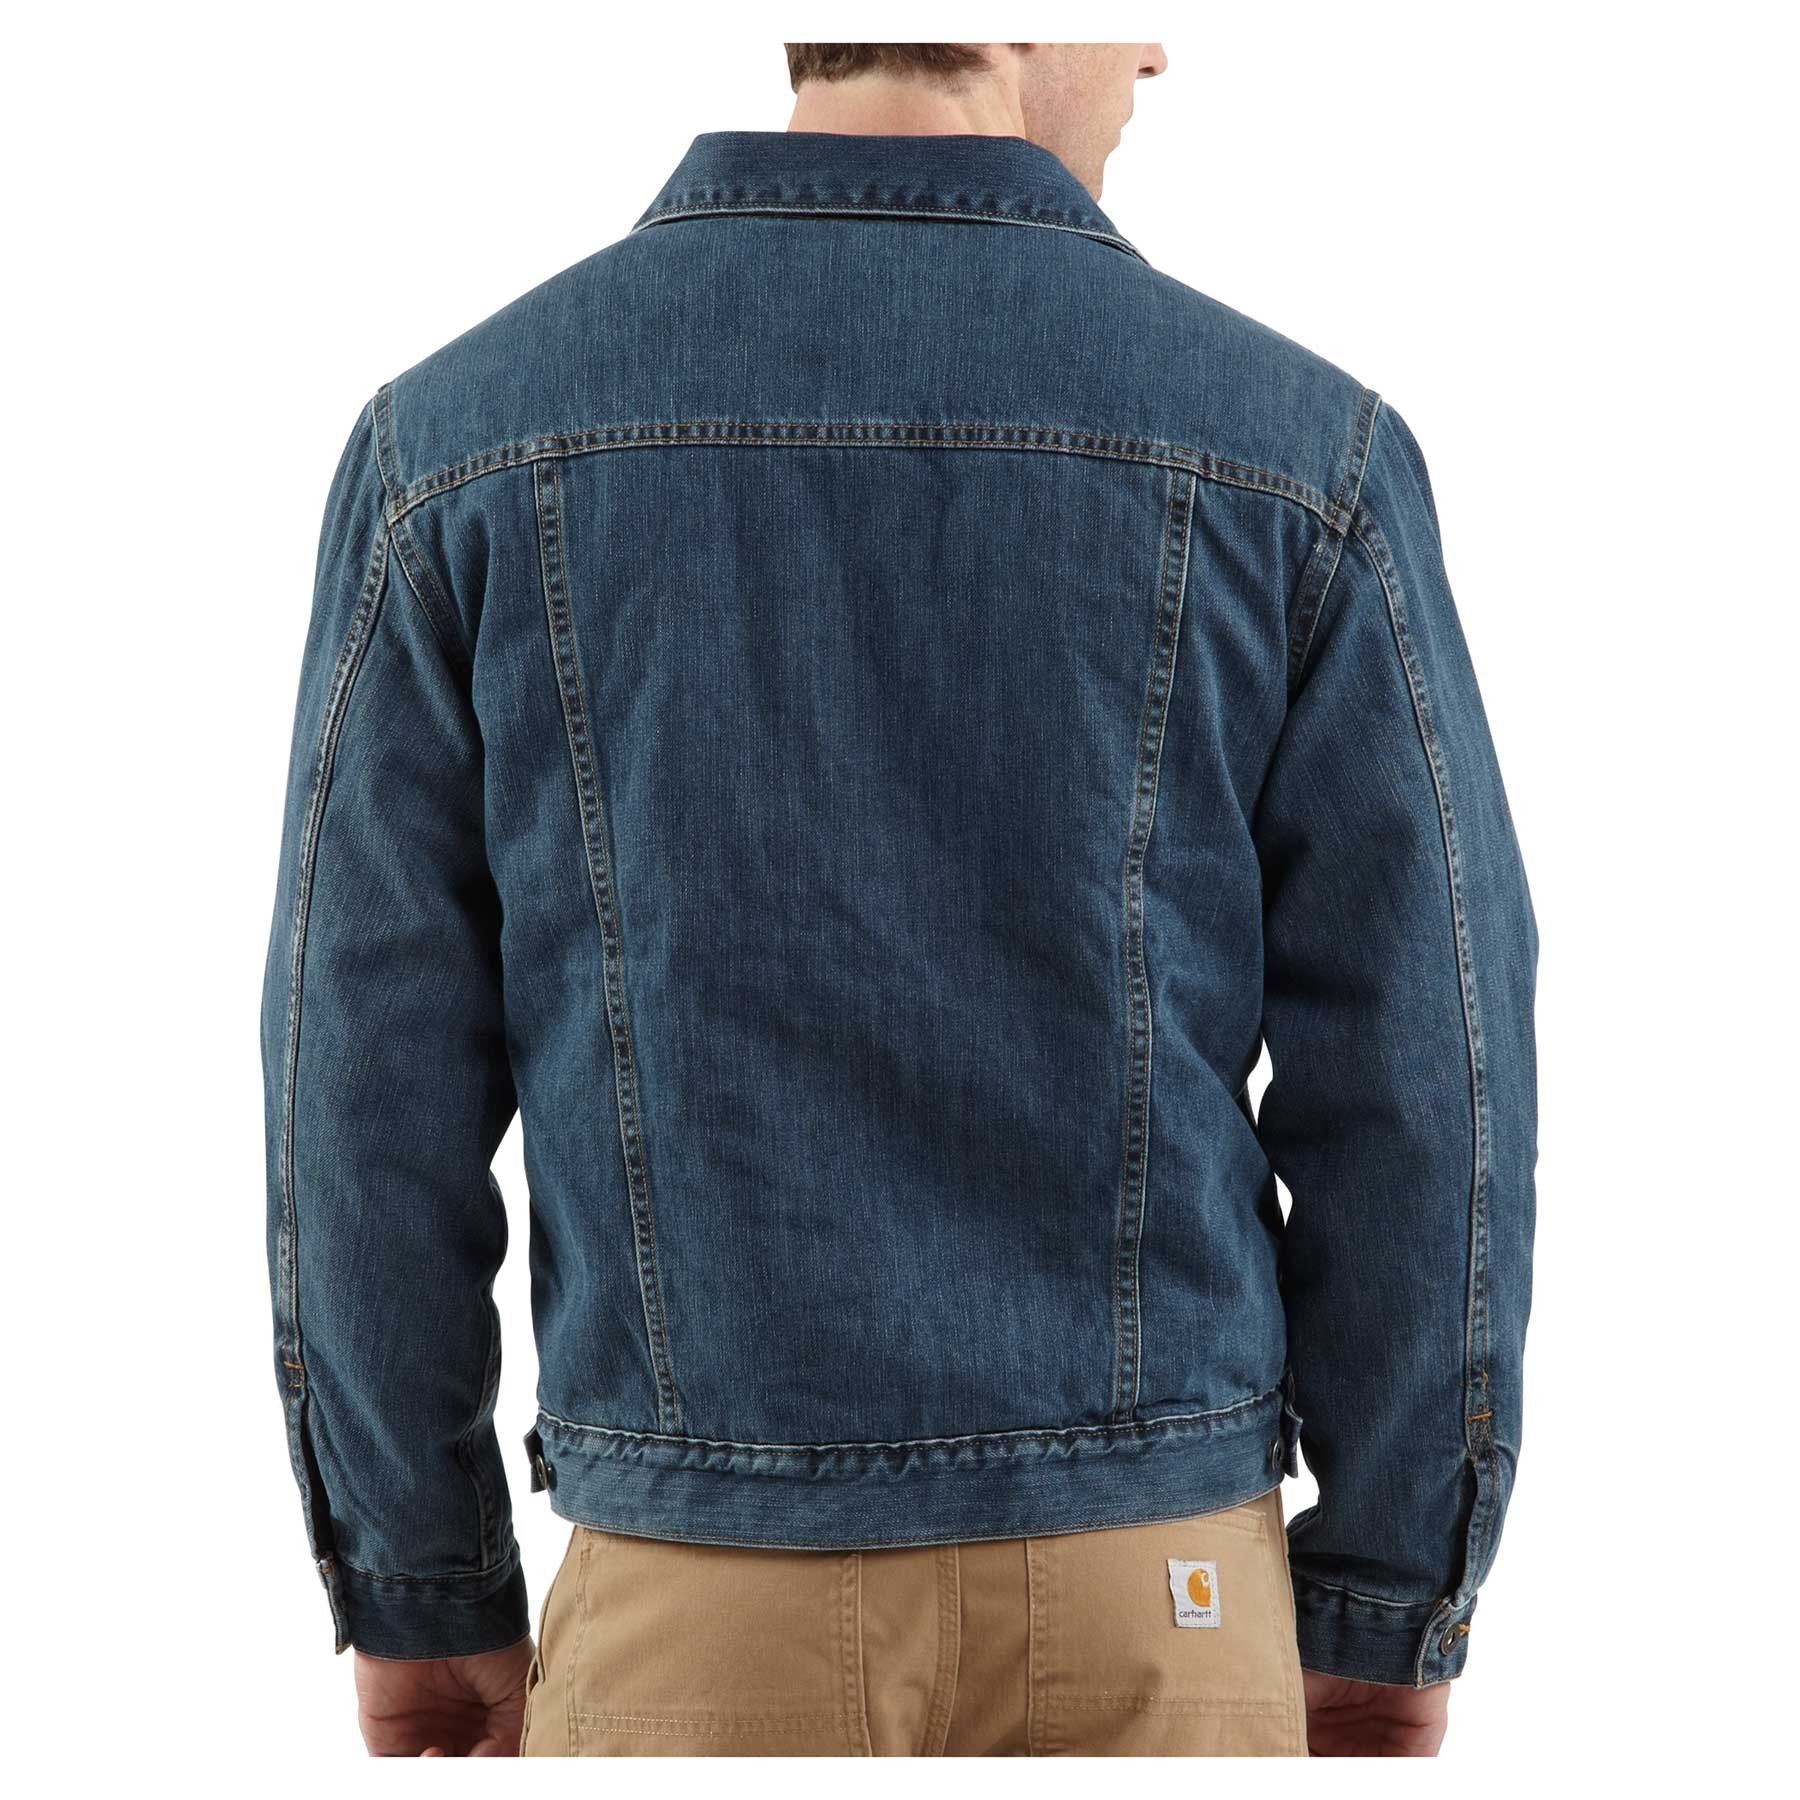 Jean Jacket Back - JacketIn